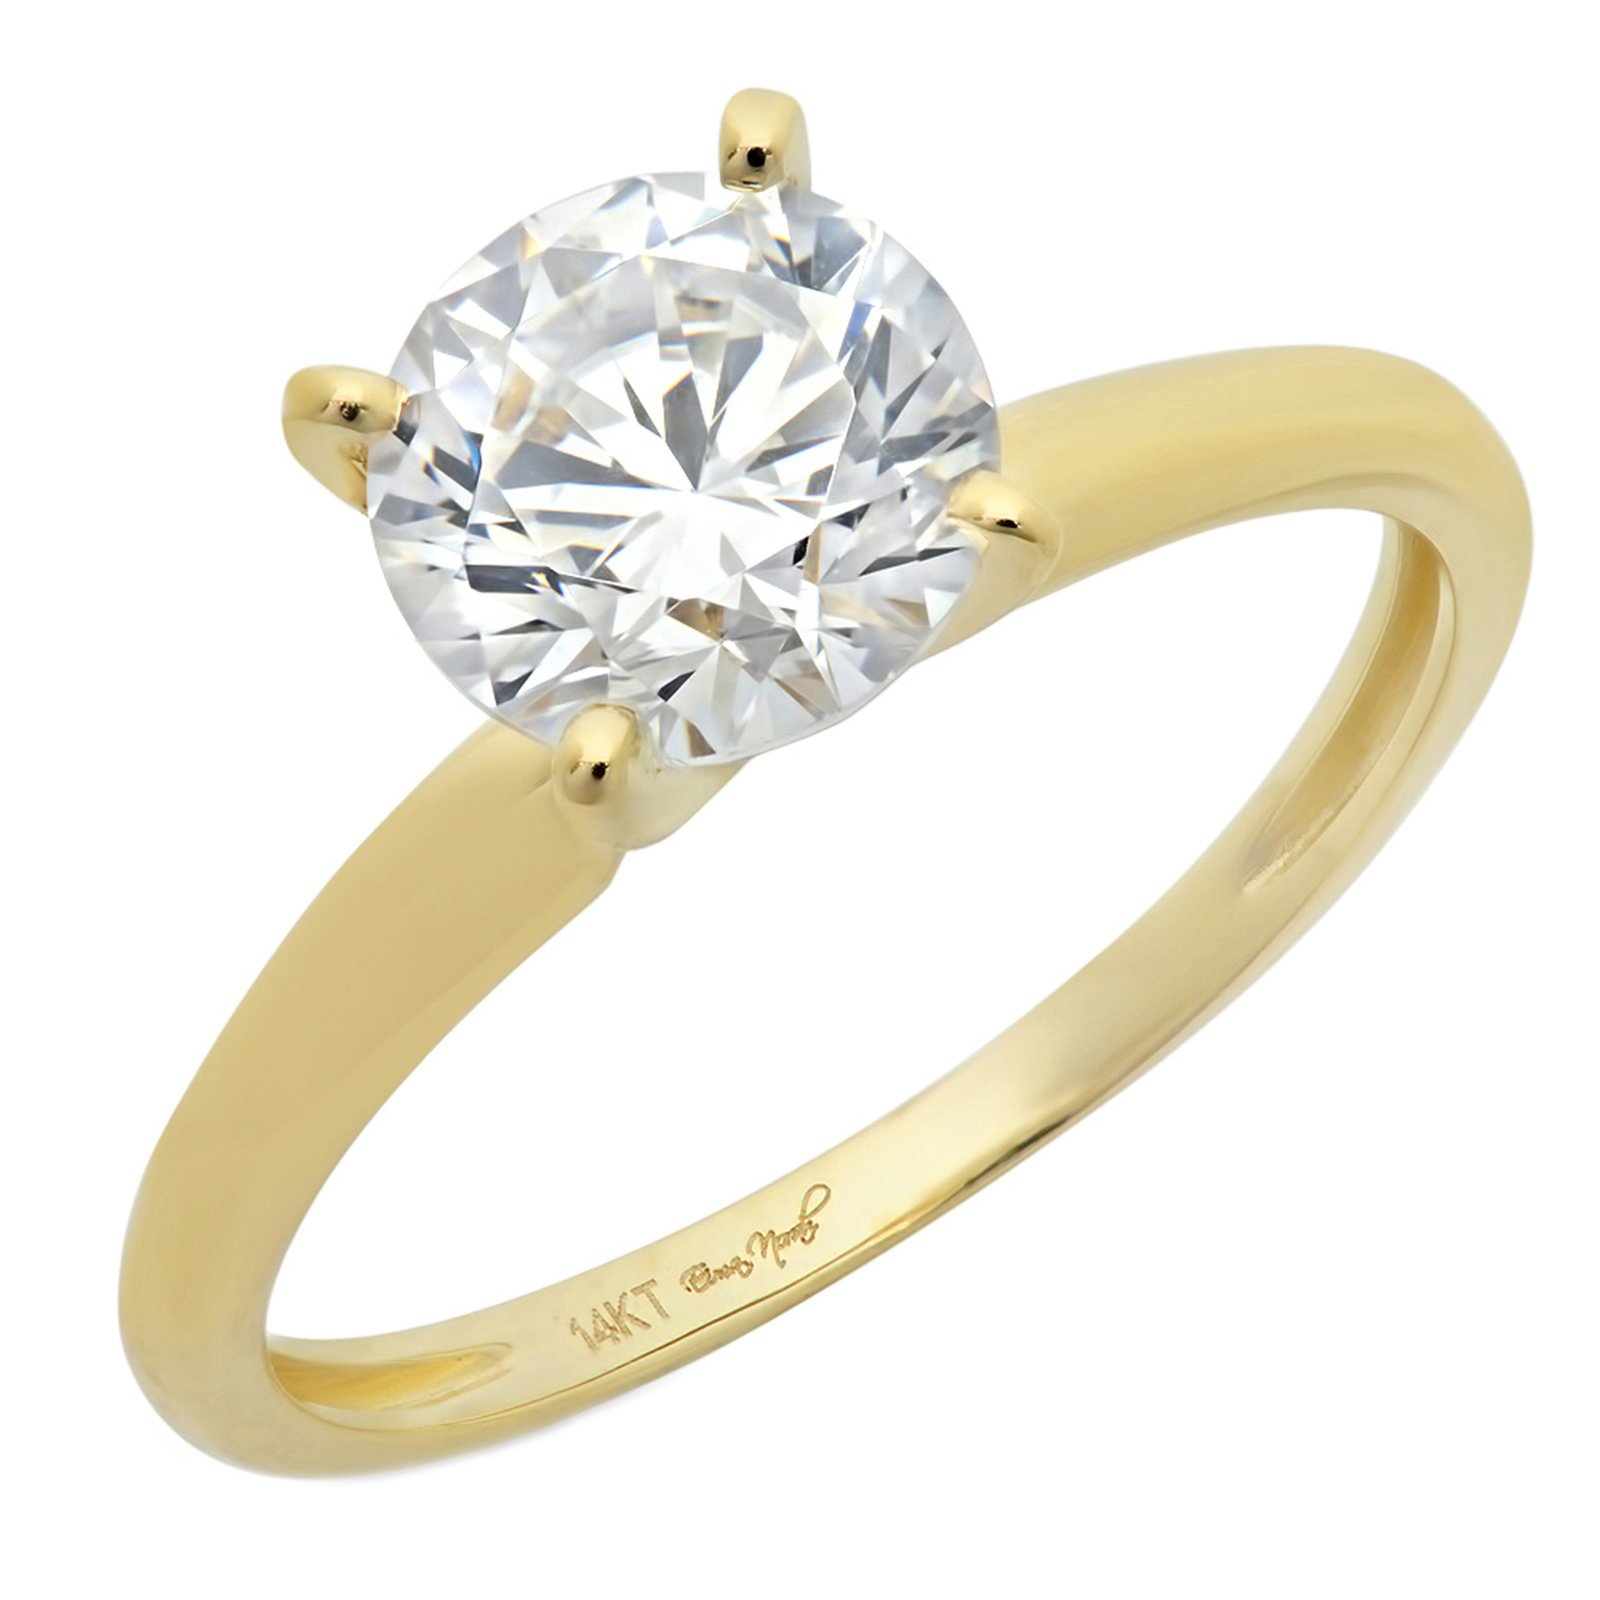 Clara Pucci 2.0 CT Brilliant Round Cut Simulated Diamond CZ Designer 4-Prong Solitaire Anniversary Promise Bridal Wedding Ring Solid 14k Yellow Gold by Clara Pucci (Image #1)